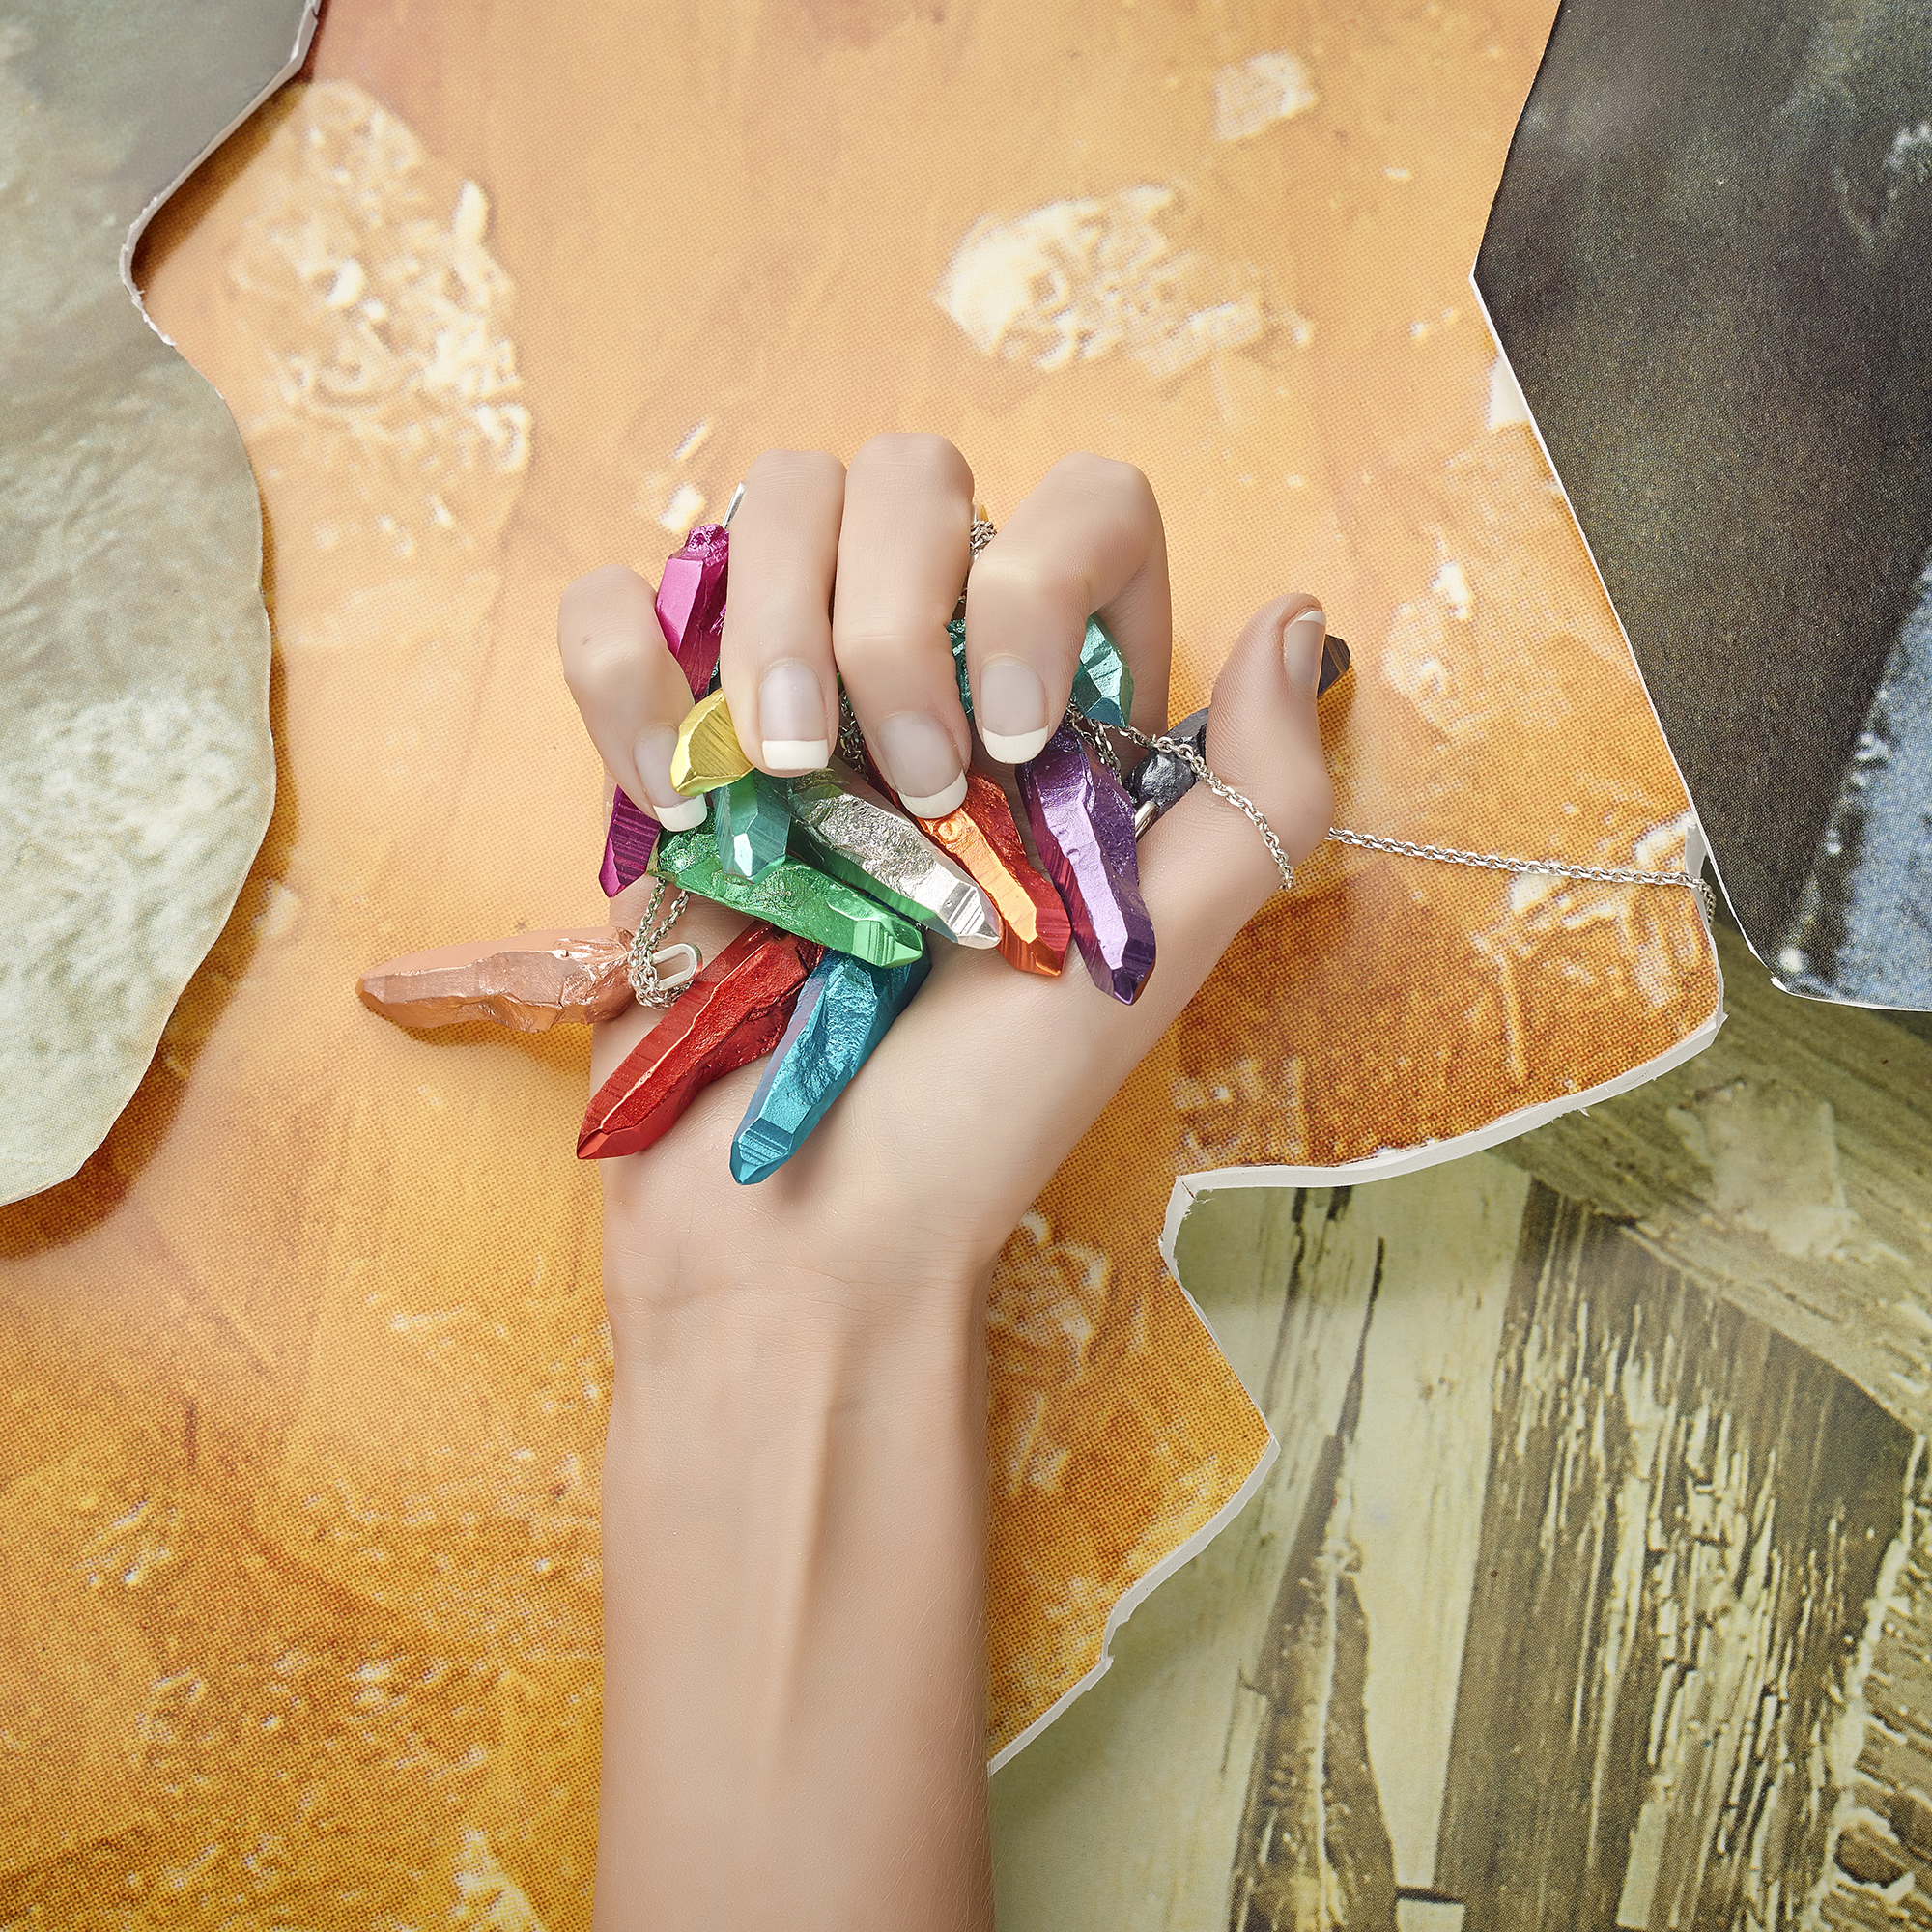 hand model clasping selection of pendant jewellery on colourful vibrant creative still life background, product photography by chris howlett in london